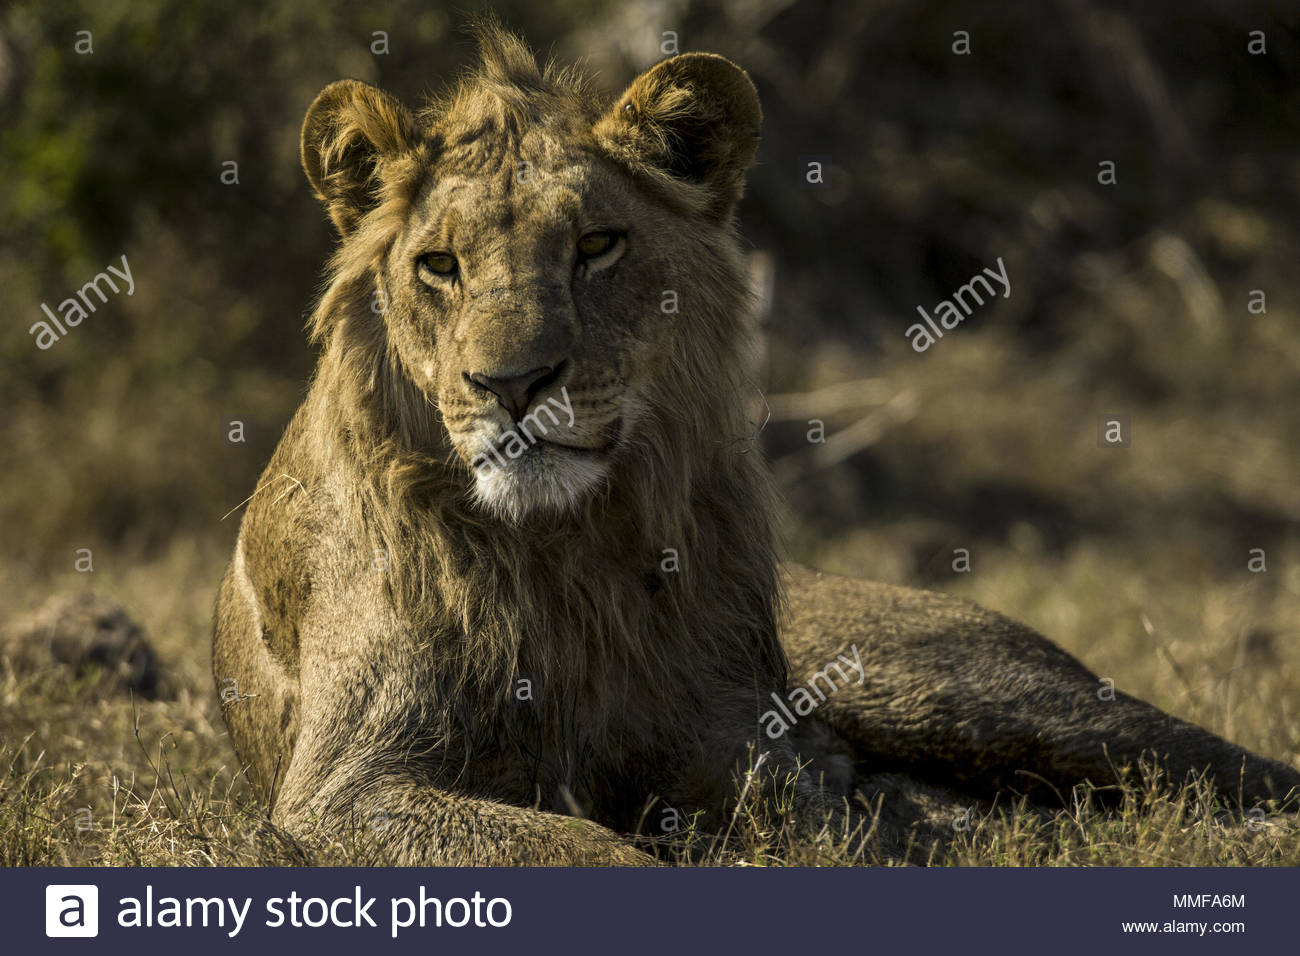 An adolescent male Lion, Panthera leo, resting. - Stock Image